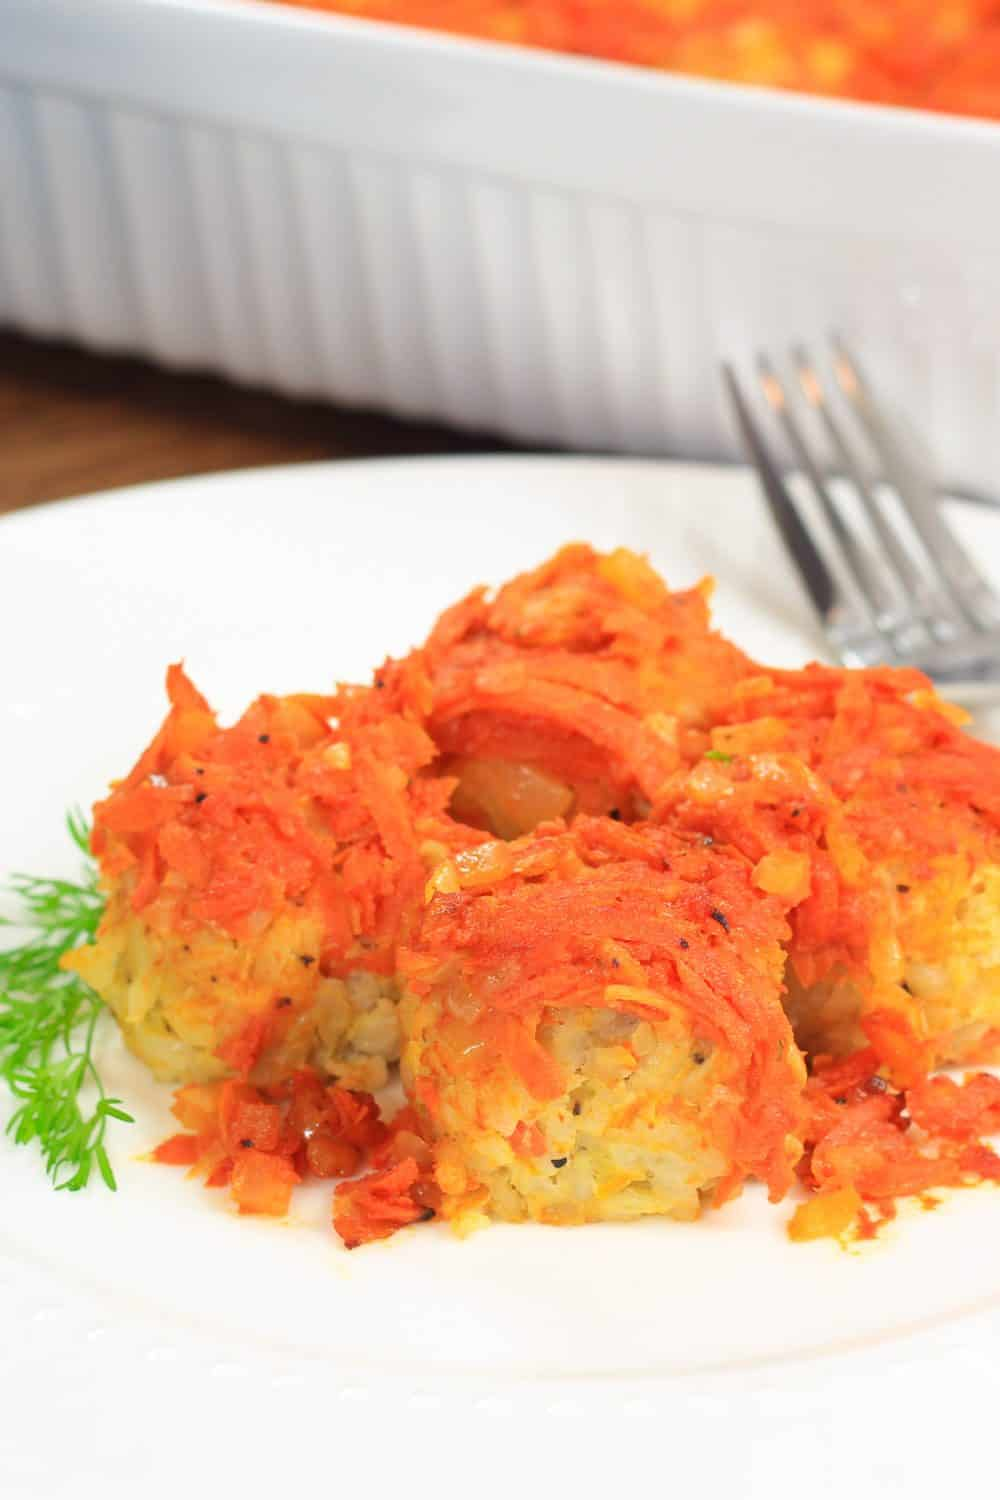 Close up picture of stuffed cabbage rolls topped with shredded carrots laying on a white plate in front of a large white casserole dish containing more of the rolls topped with sprigs of fresh herbs